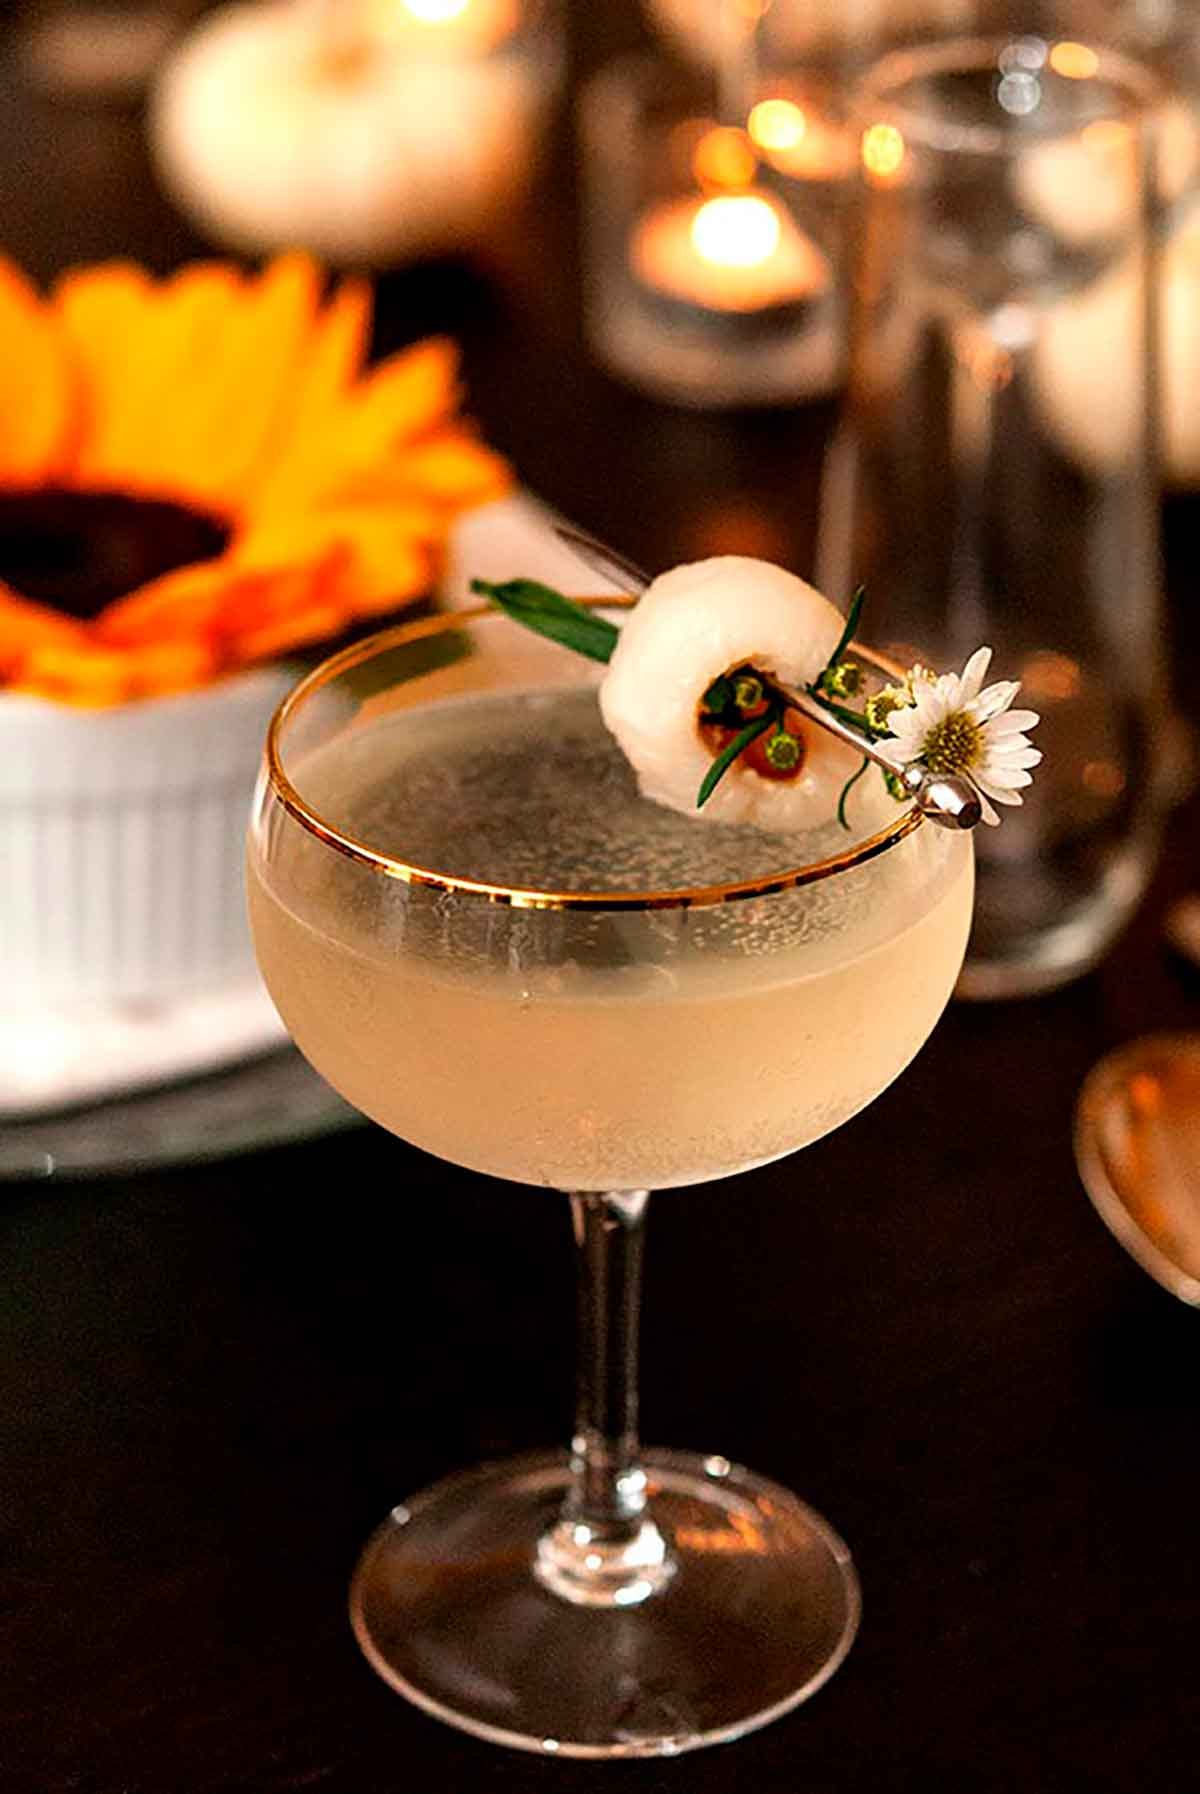 A cocktail, garnished with a lychee and small daisy, on a set dinner table with sunflowers, glasses and candles.